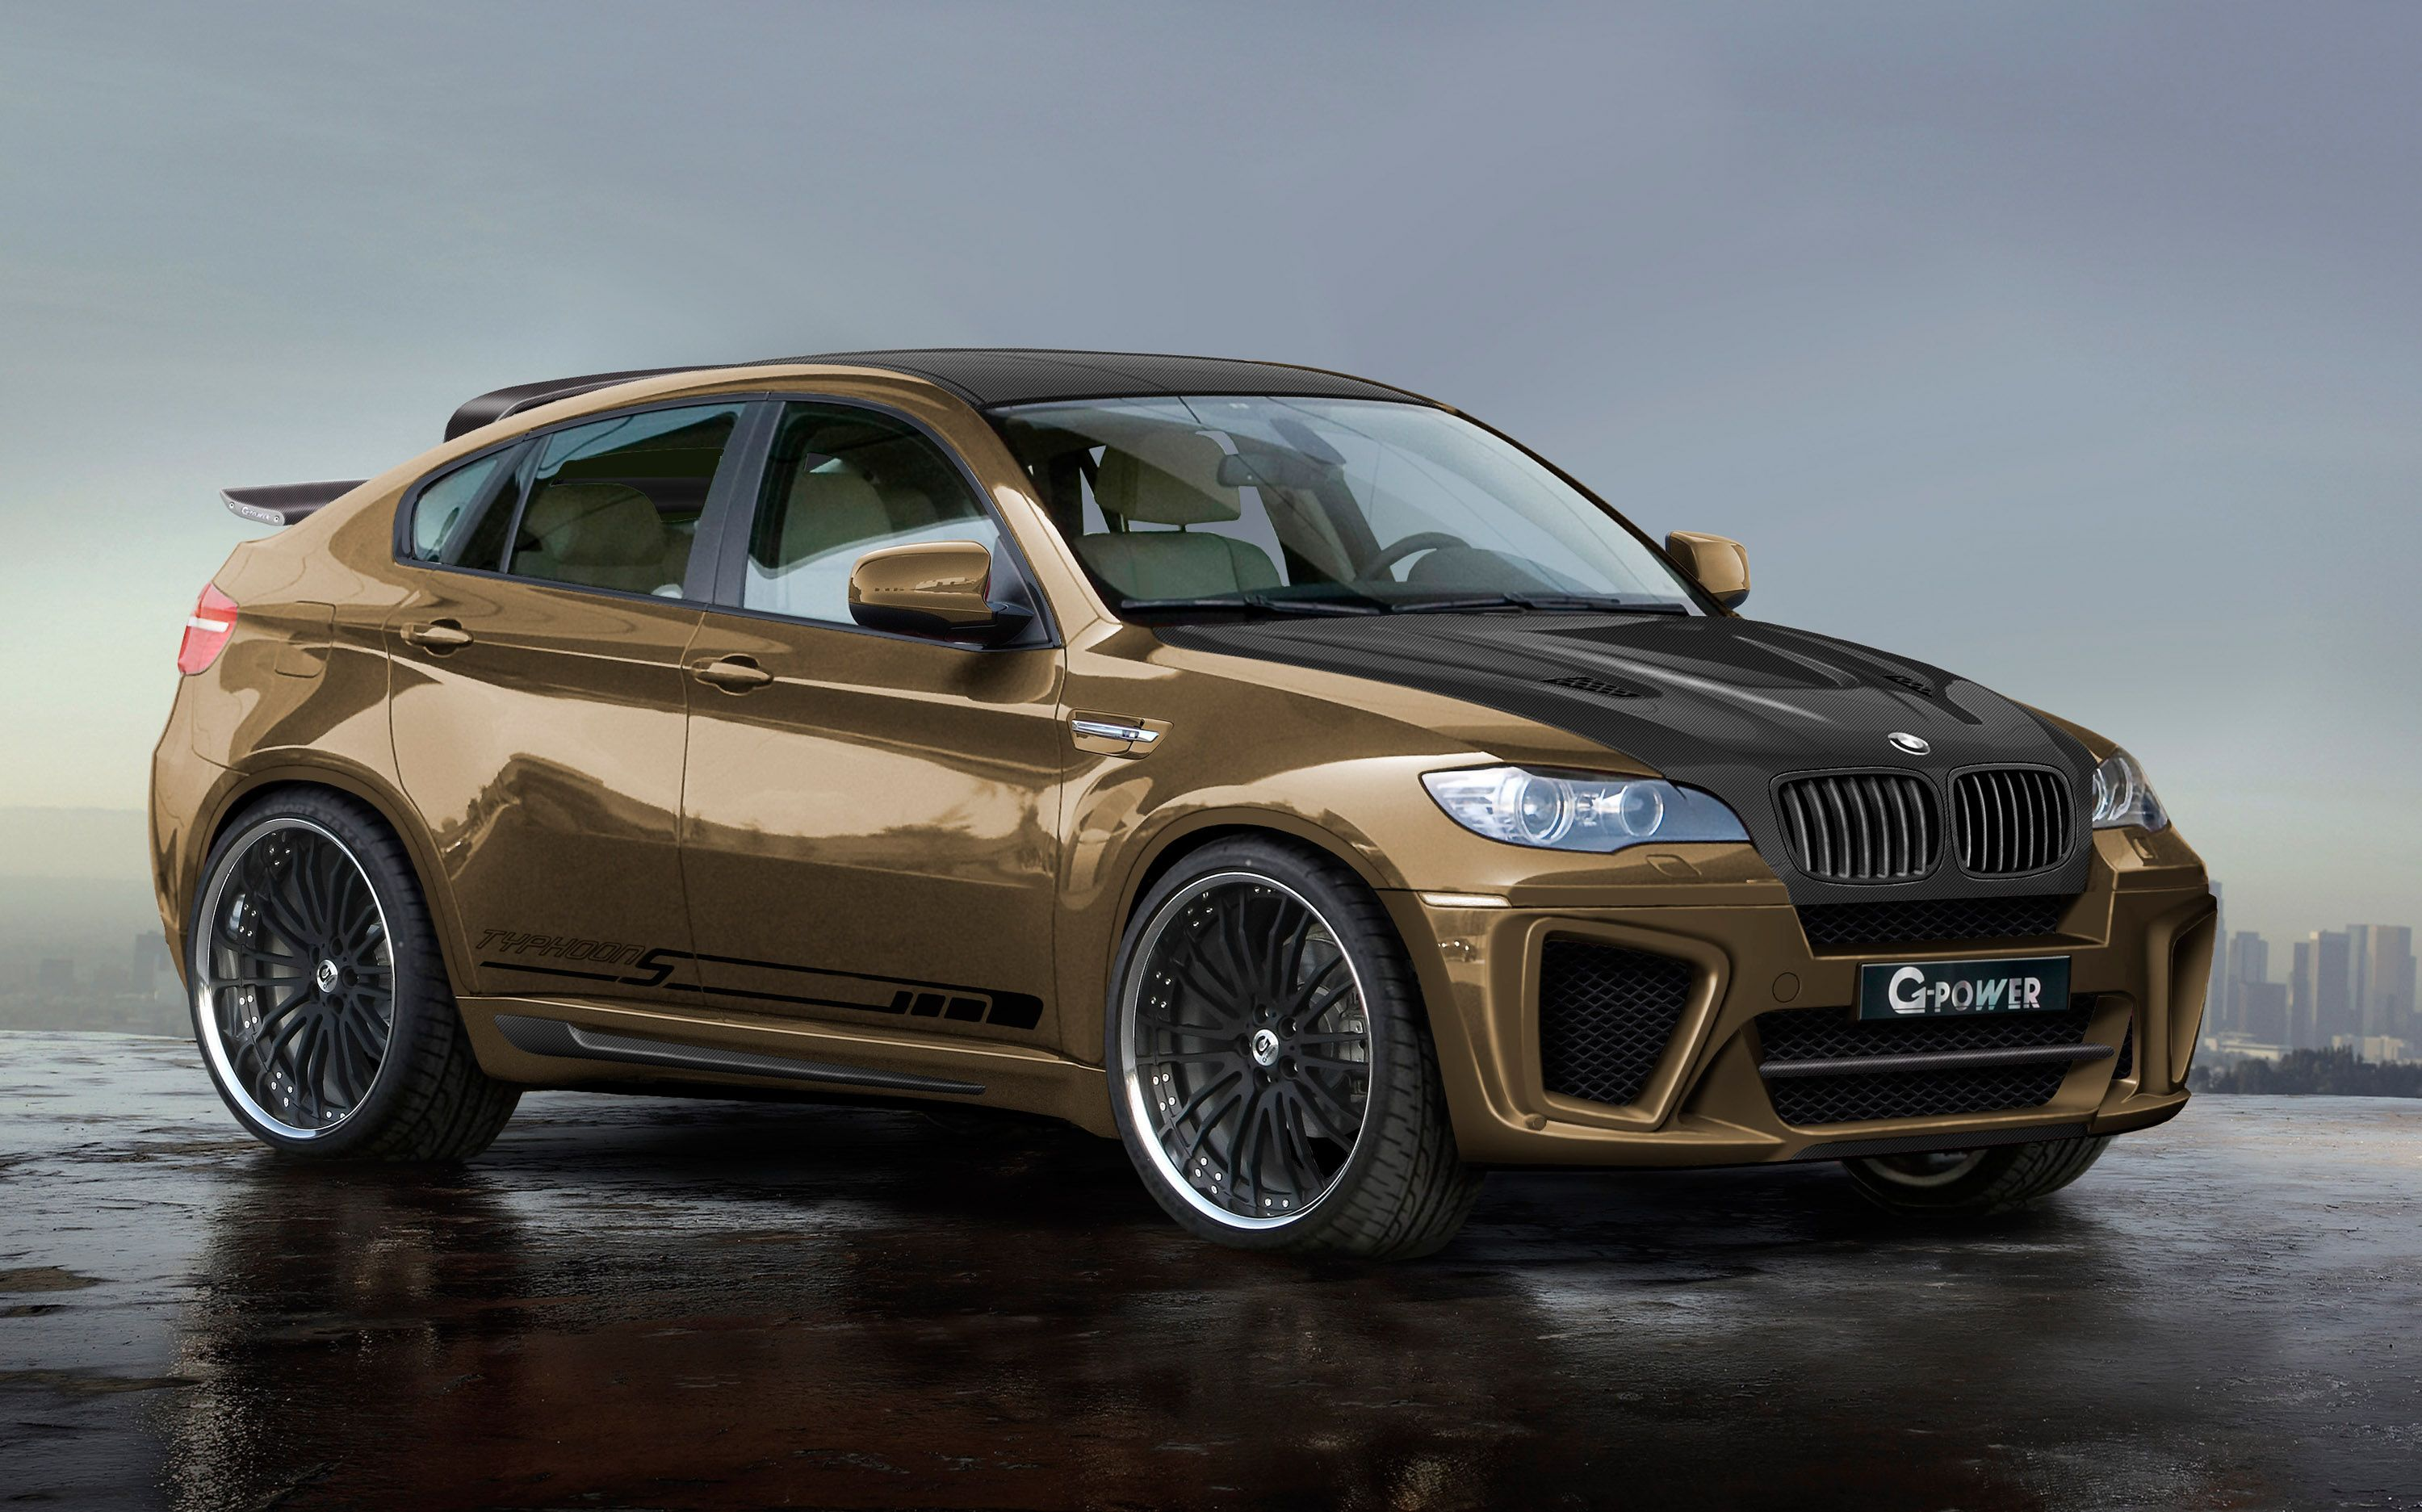 G Power Bmw X5 M And X6 M Bmw X6 Bmw Bmw Wallpapers